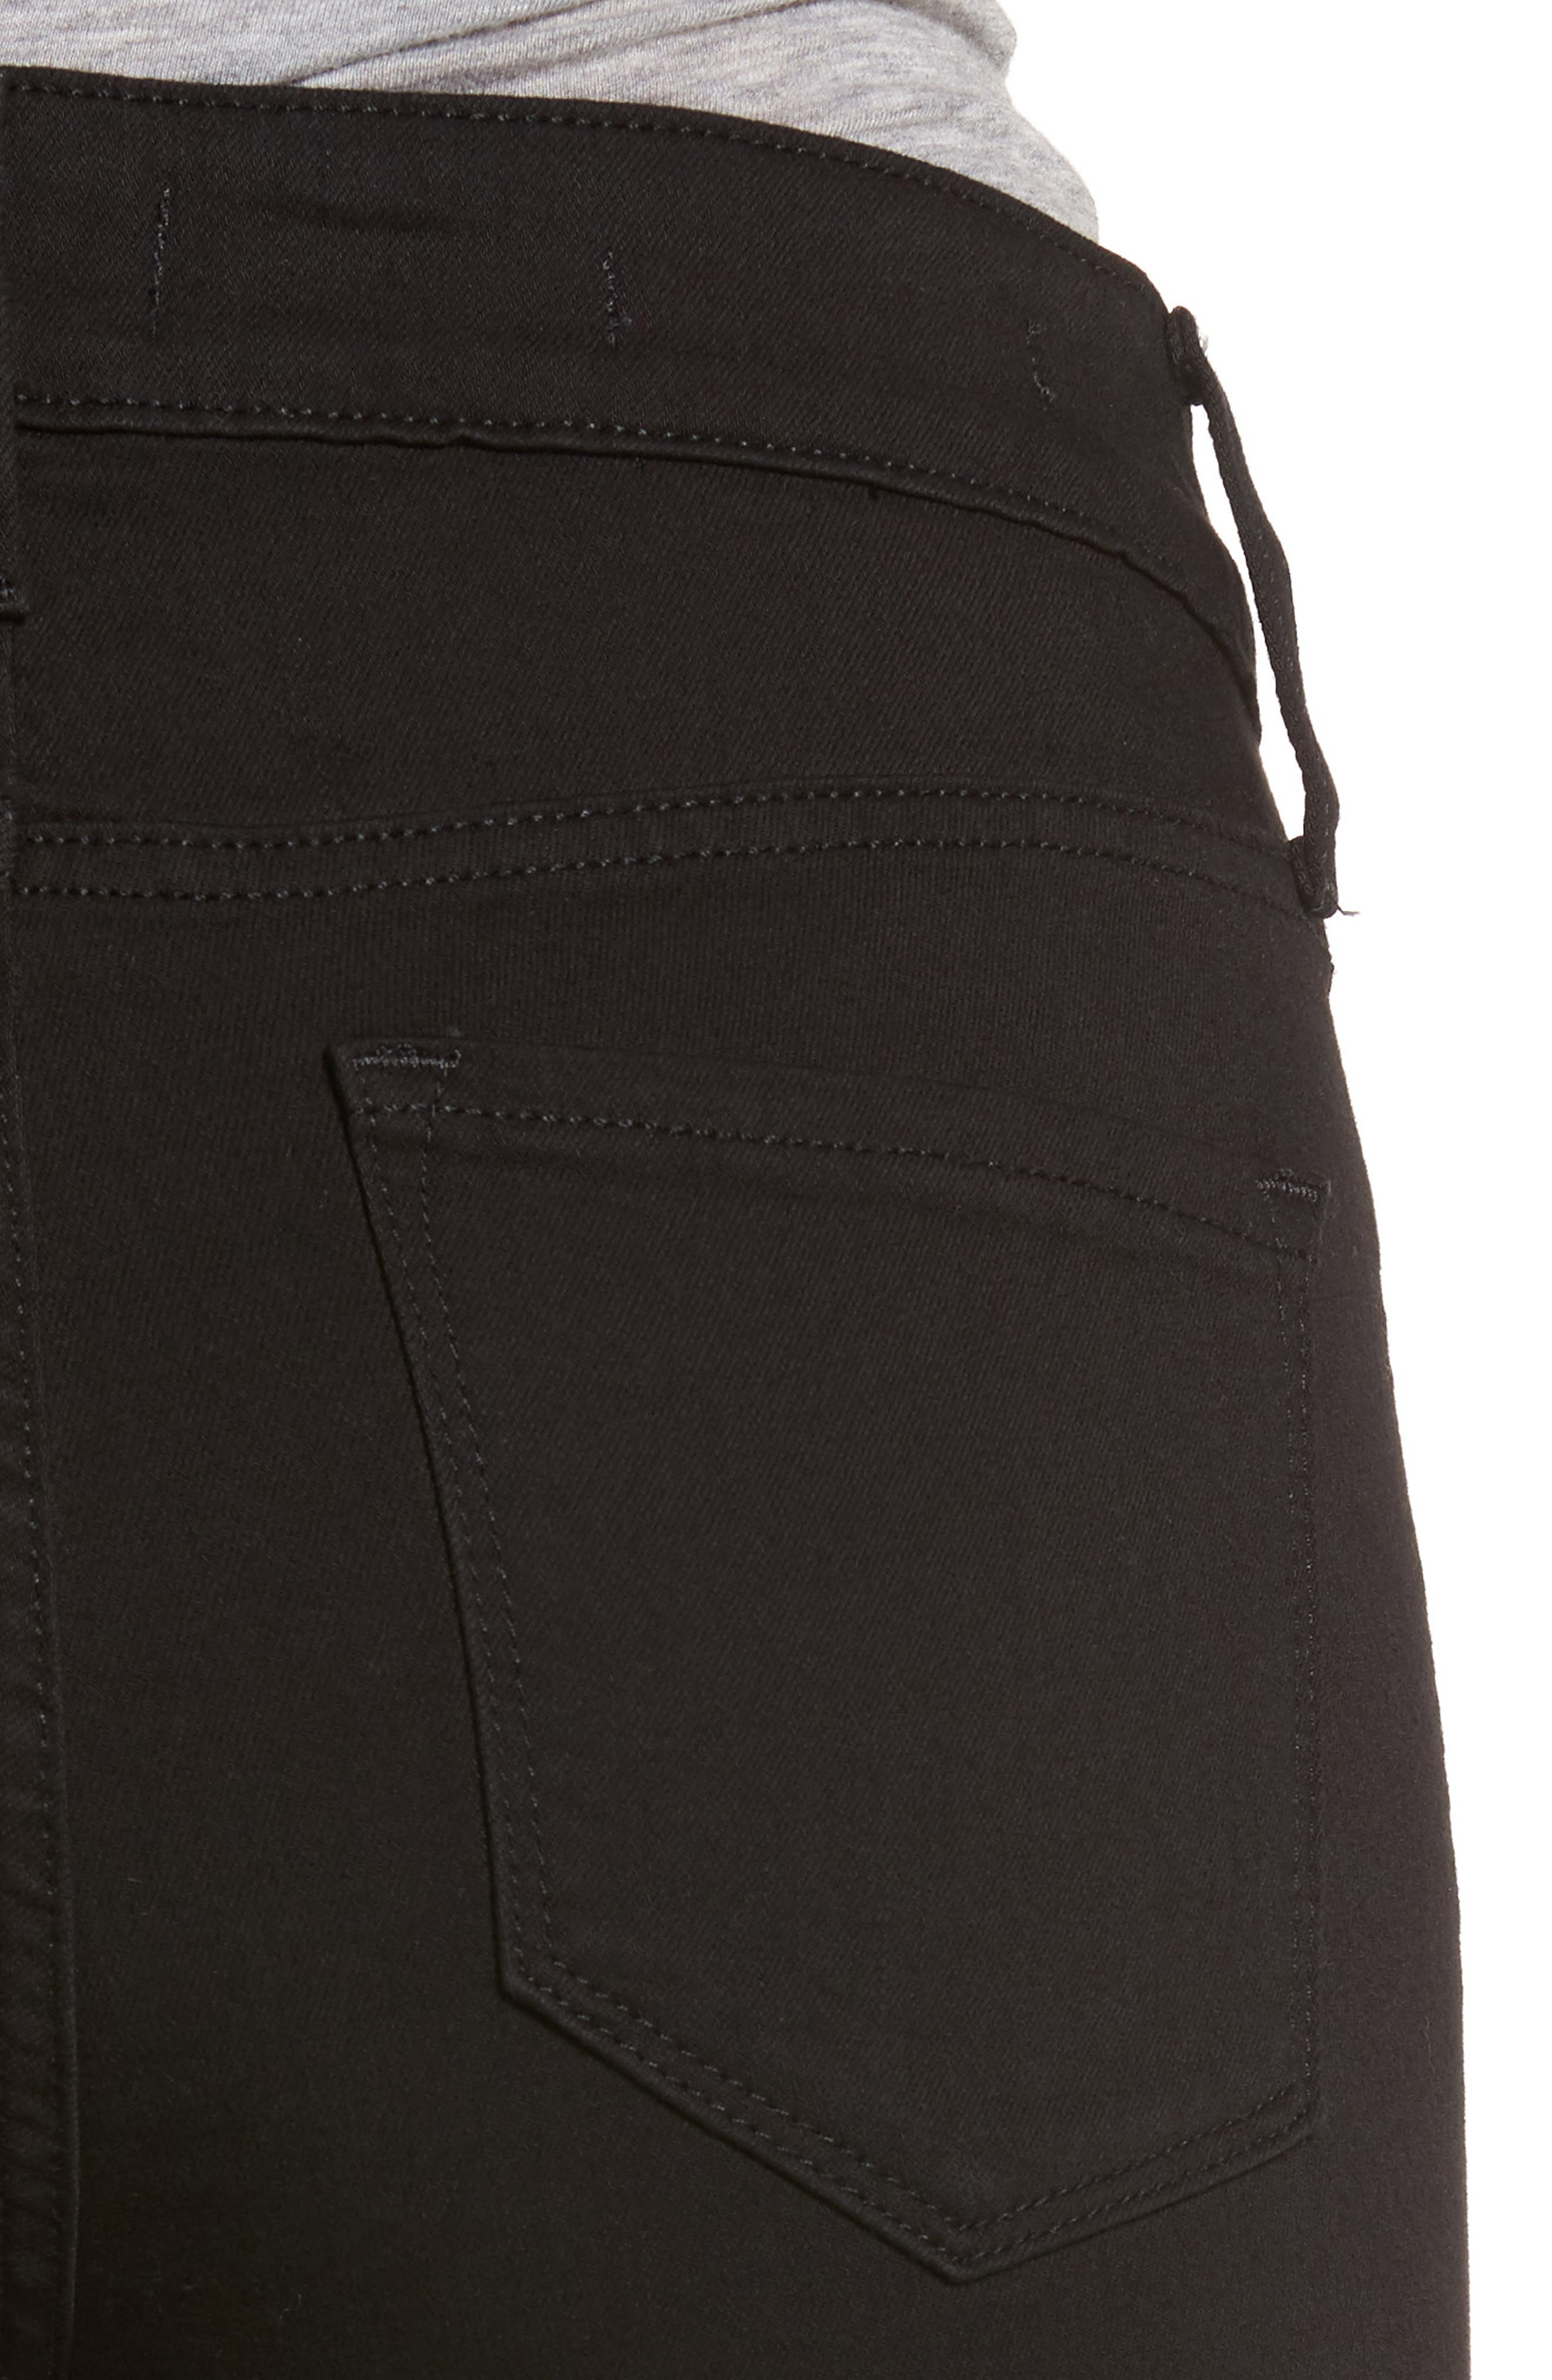 Ami Stretch Skinny Jeans,                             Alternate thumbnail 6, color,